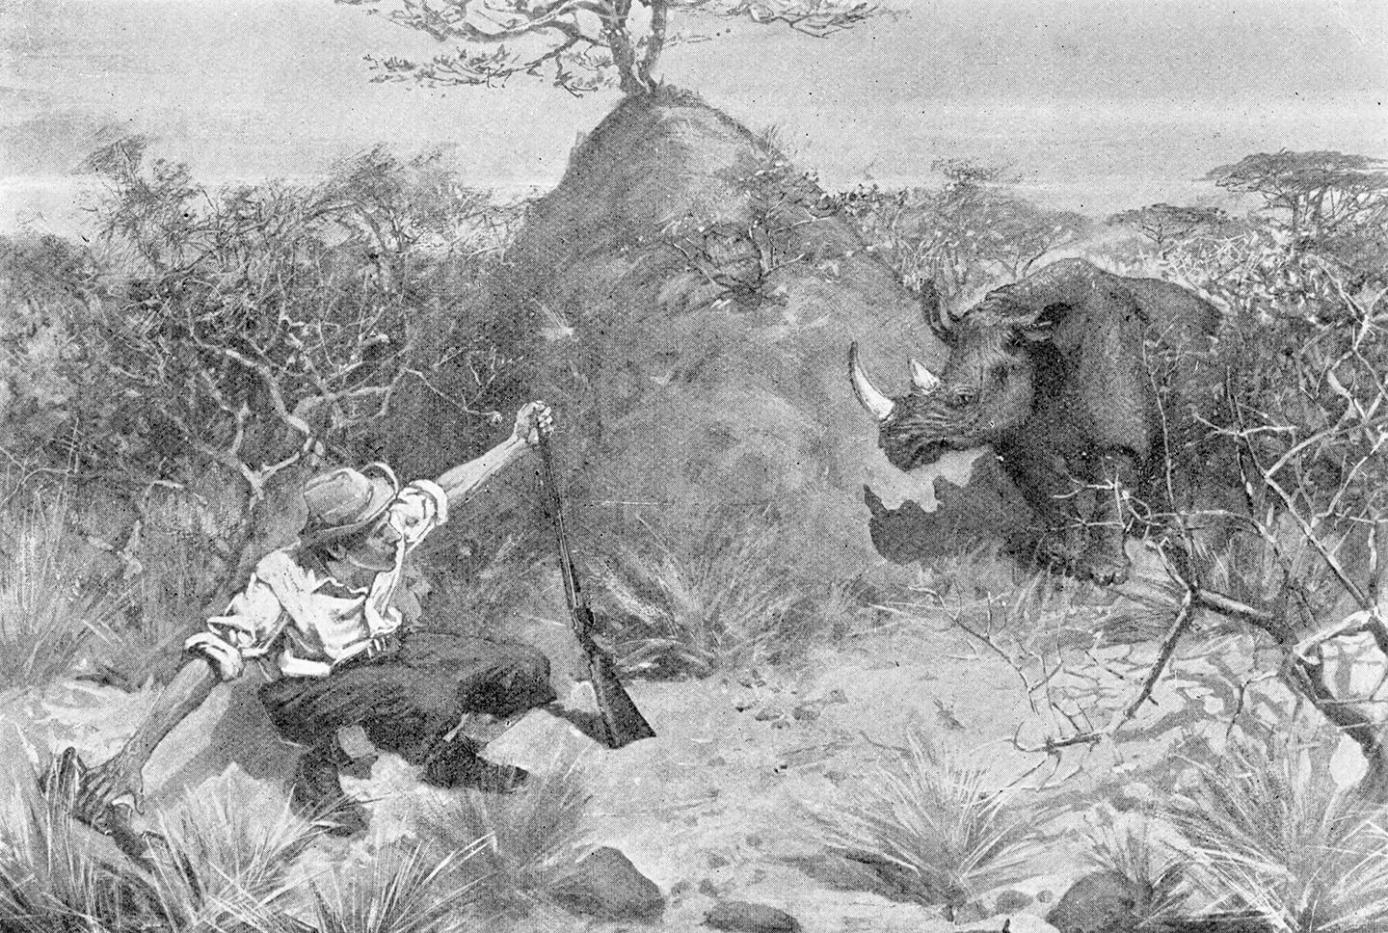 Grogan gropes for his rifle in the undergrowth whilst facing a rhino